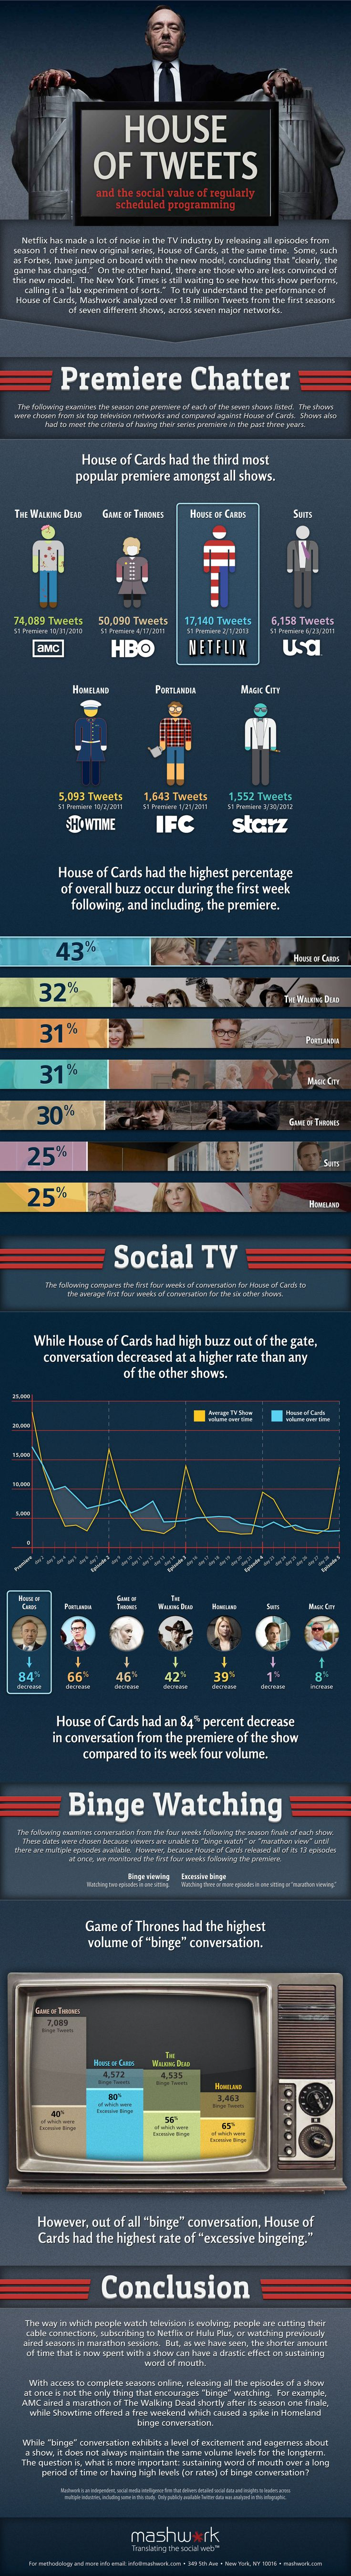 Is Netflix Hurting Television Buzz?